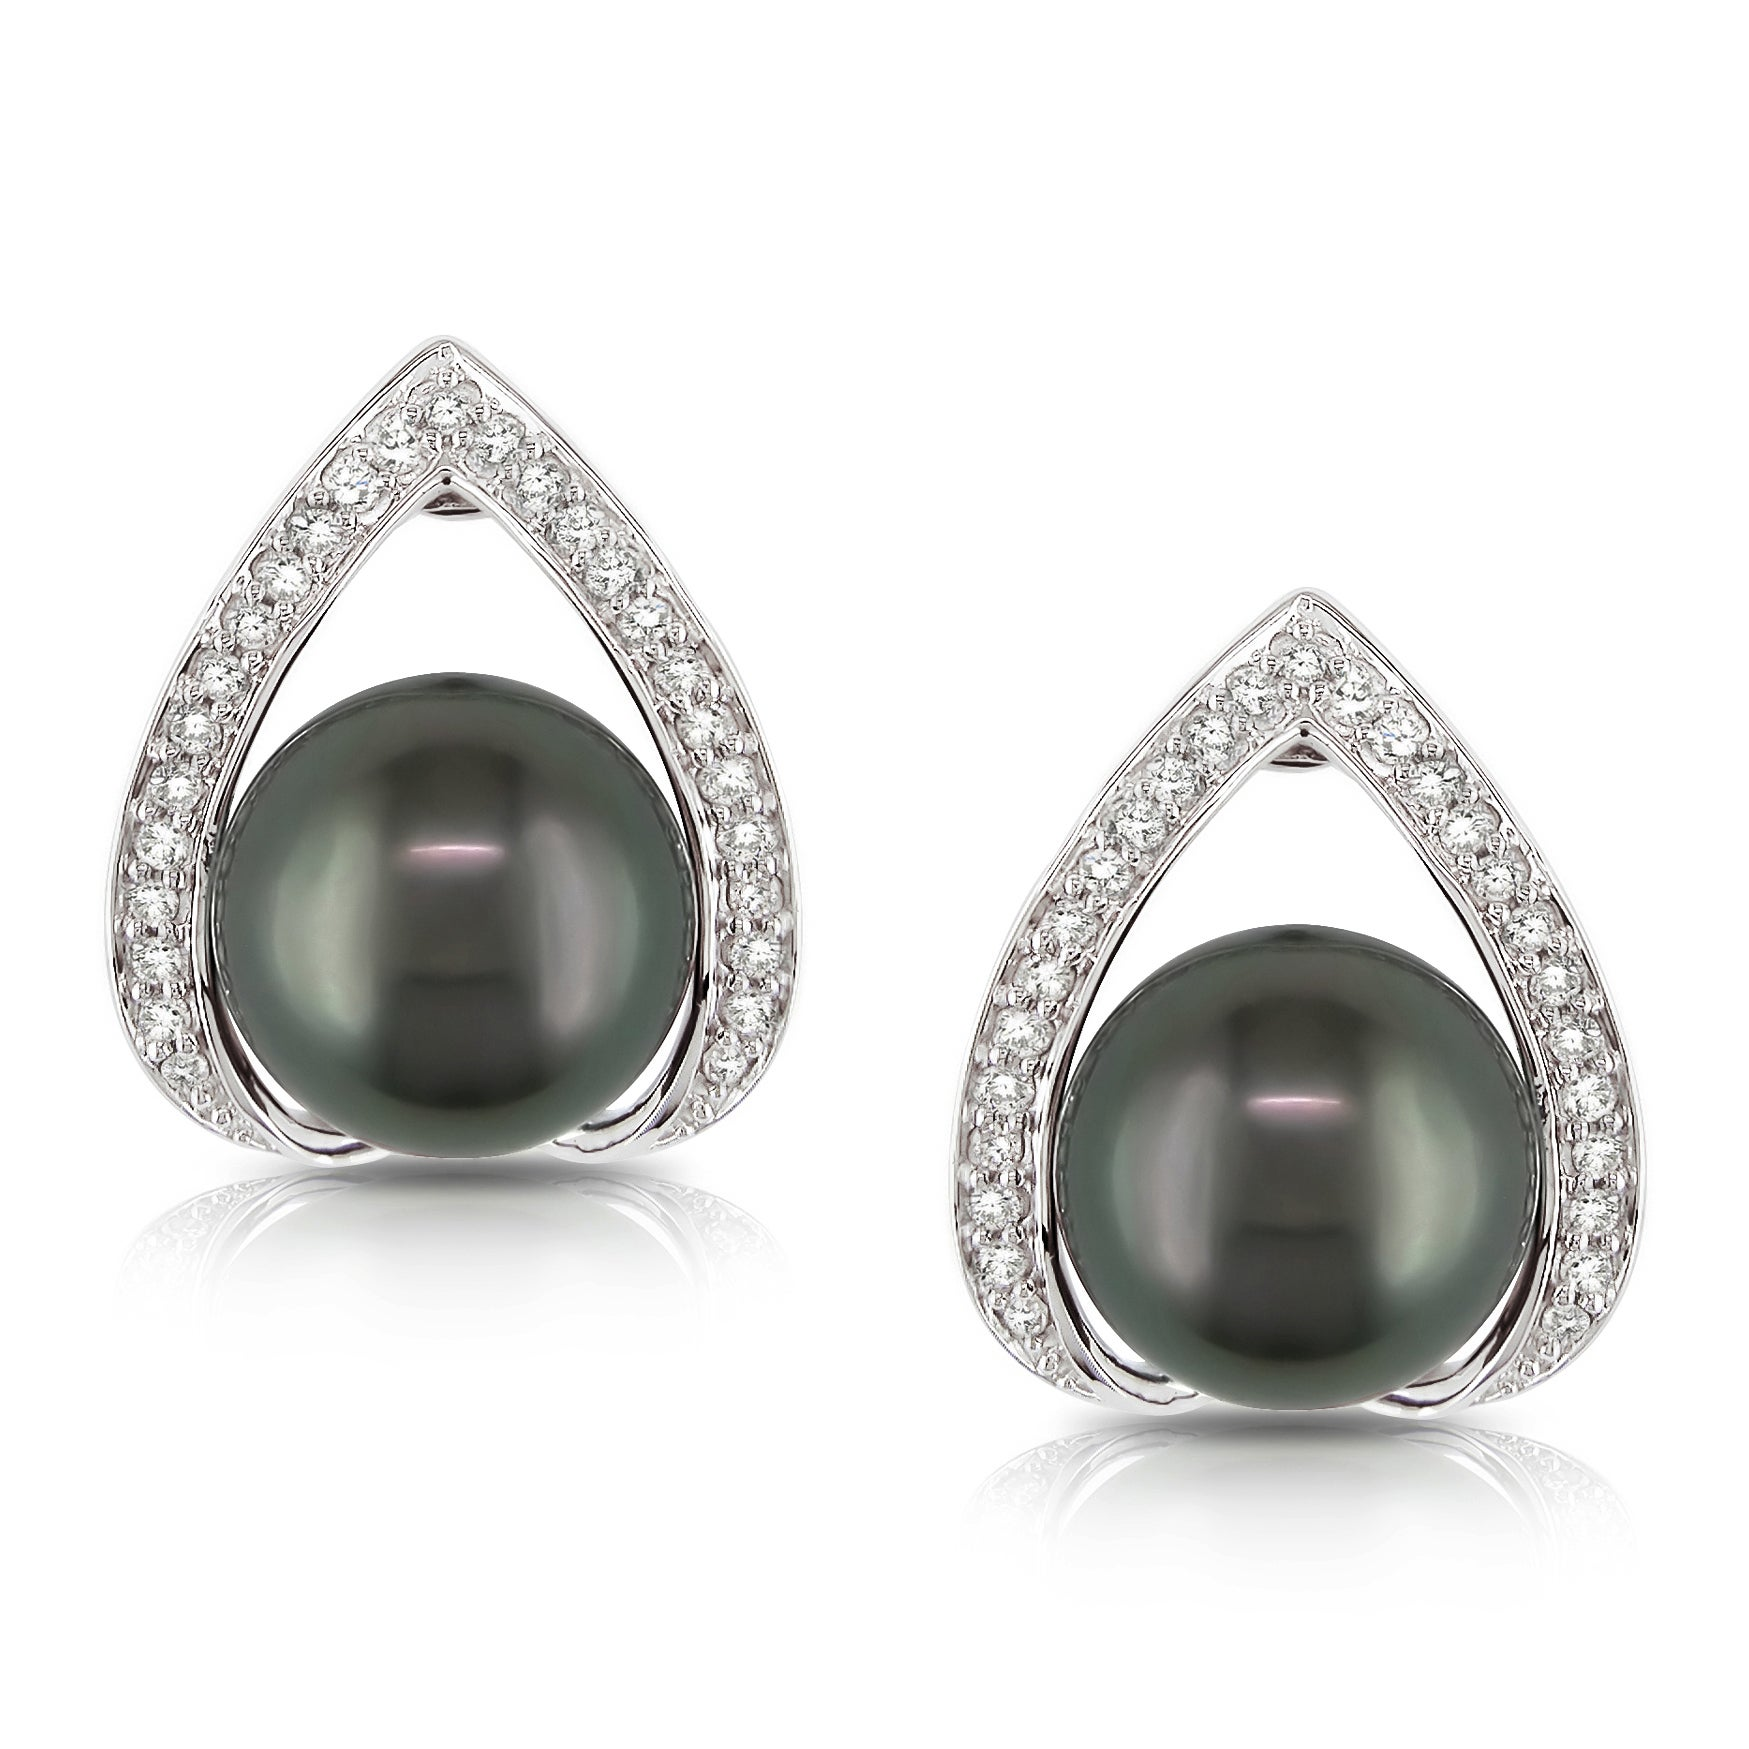 Miadora 14k White Gold Tahitain Pearl and 1/4ct TDW Diamond Earrings (H-I, I2-I3)